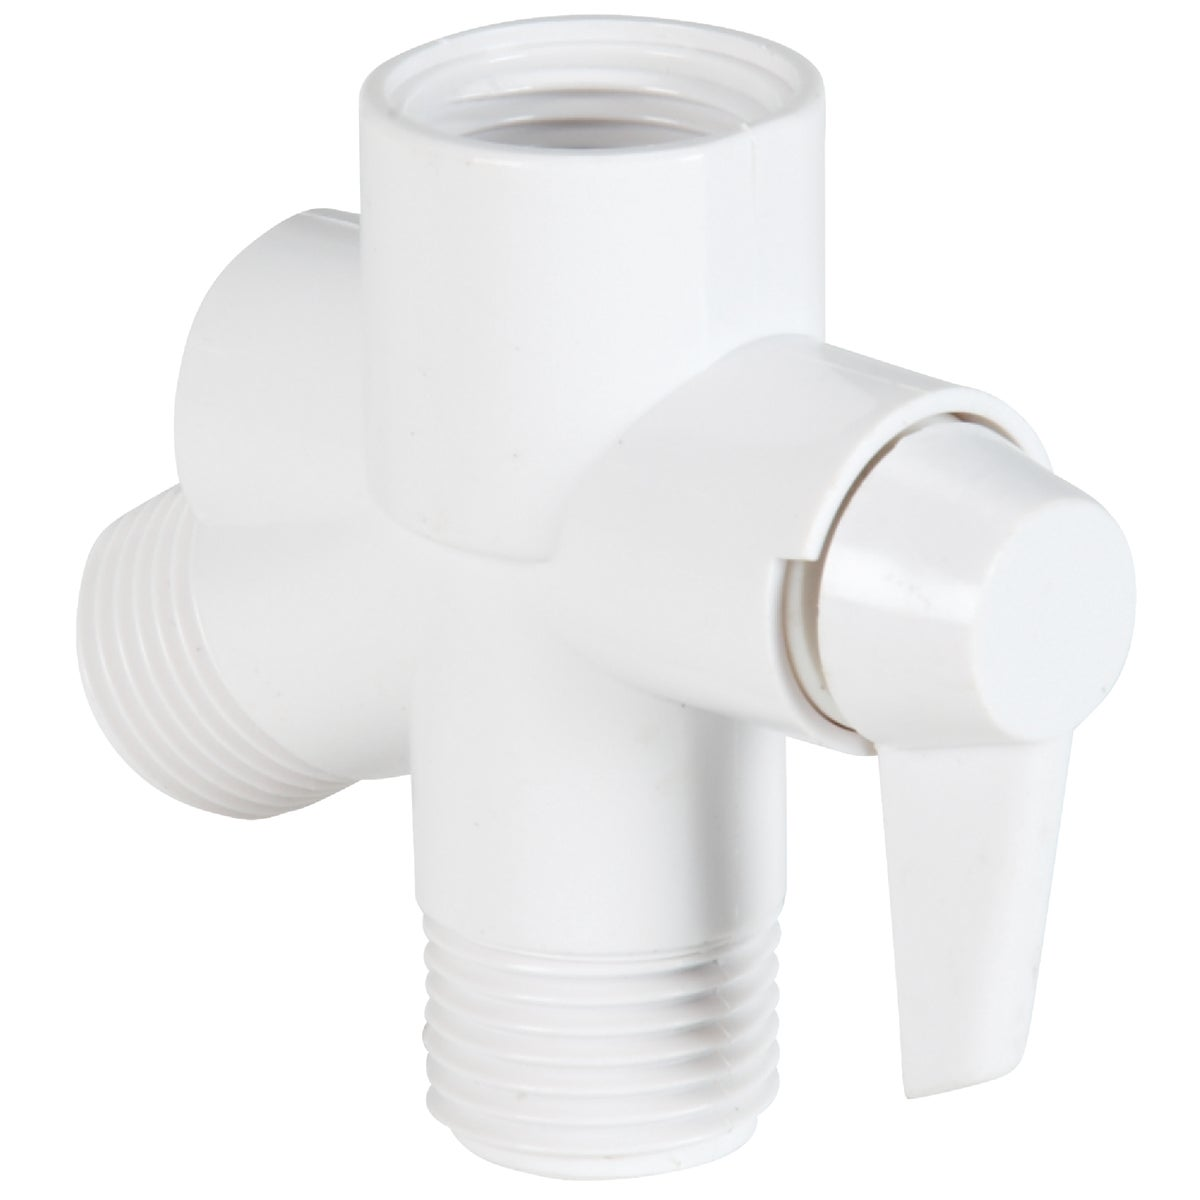 WHT SHOWER DIVERTER - 483486 by Do it Best